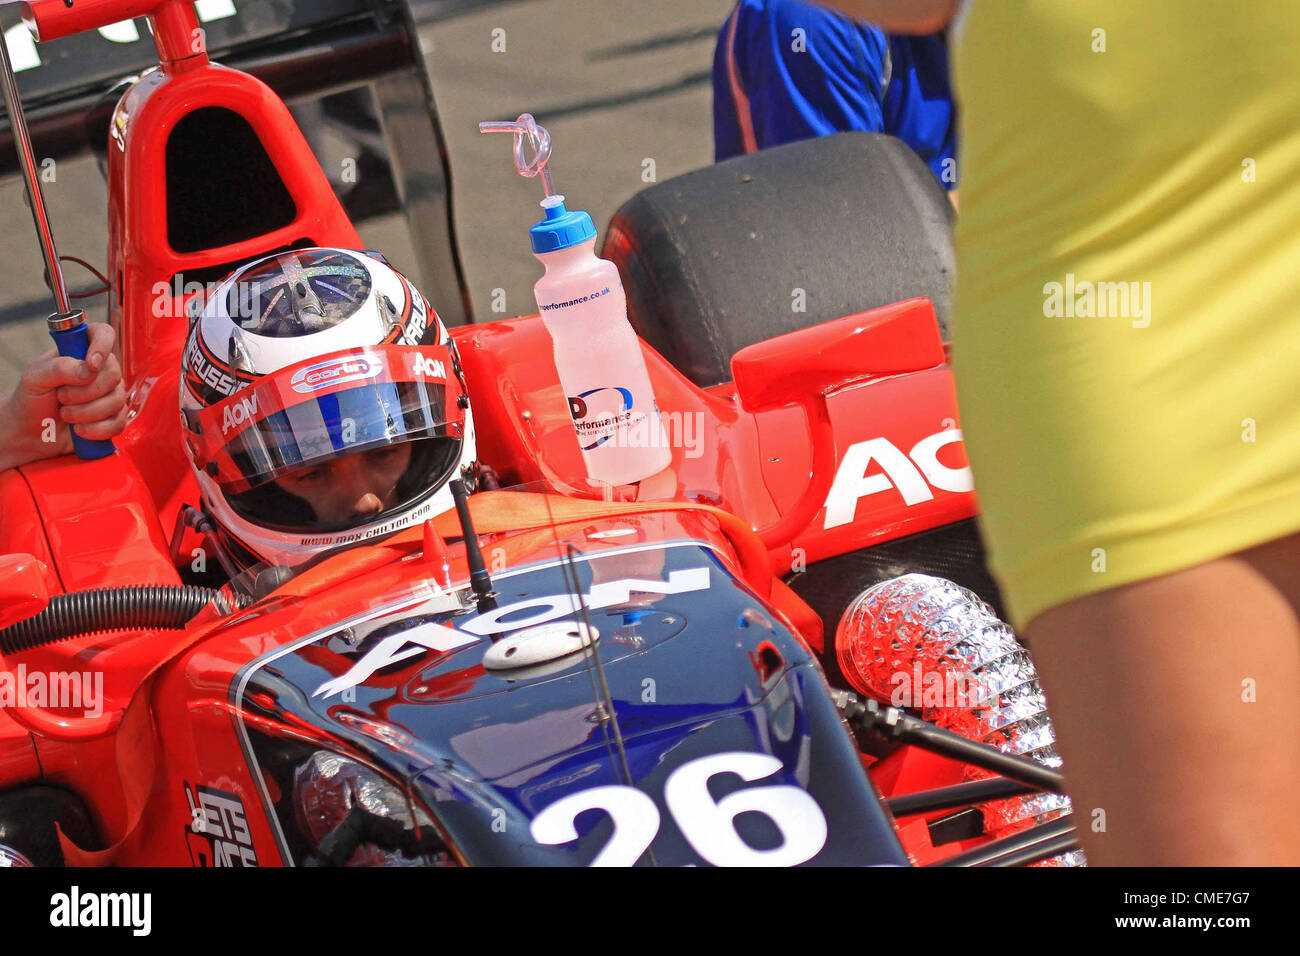 """28.07.2012. Budapest, Hungary. FIA GP2  Motor racing.  Max Chilton on the grid """"eyes down max"""" - Stock Image"""